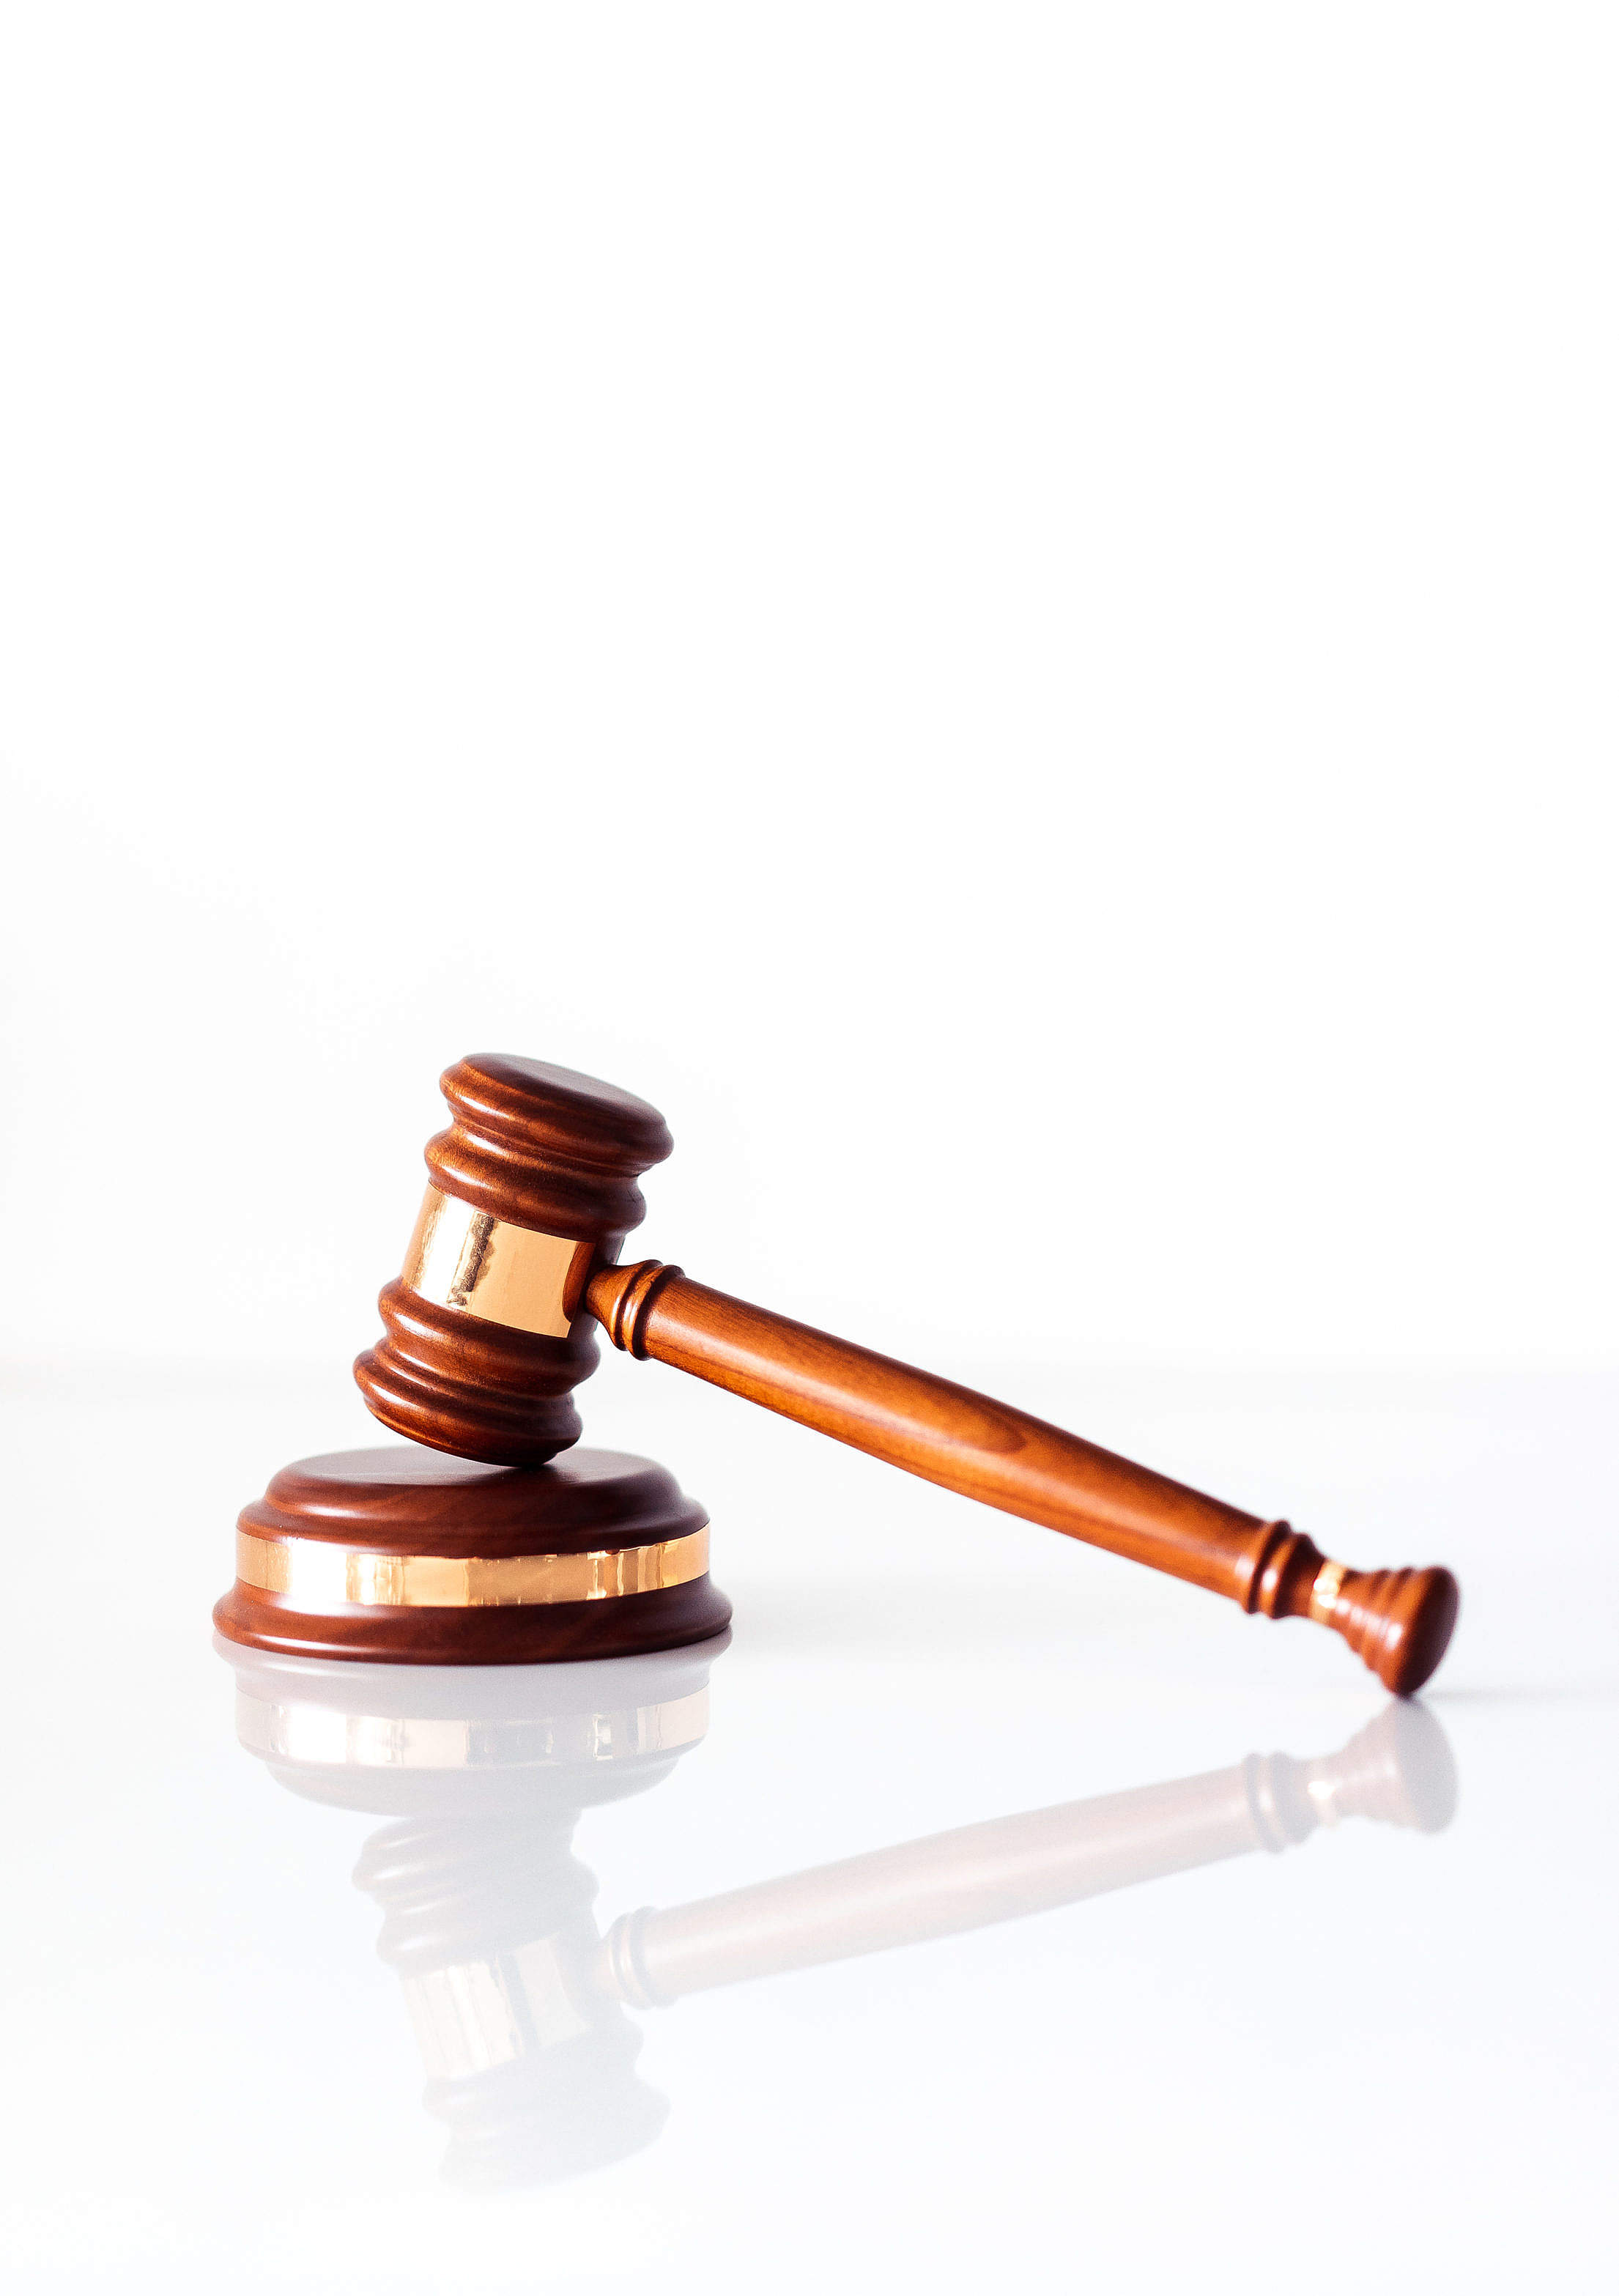 Judge Hammer Law Firm Free Stock Photo